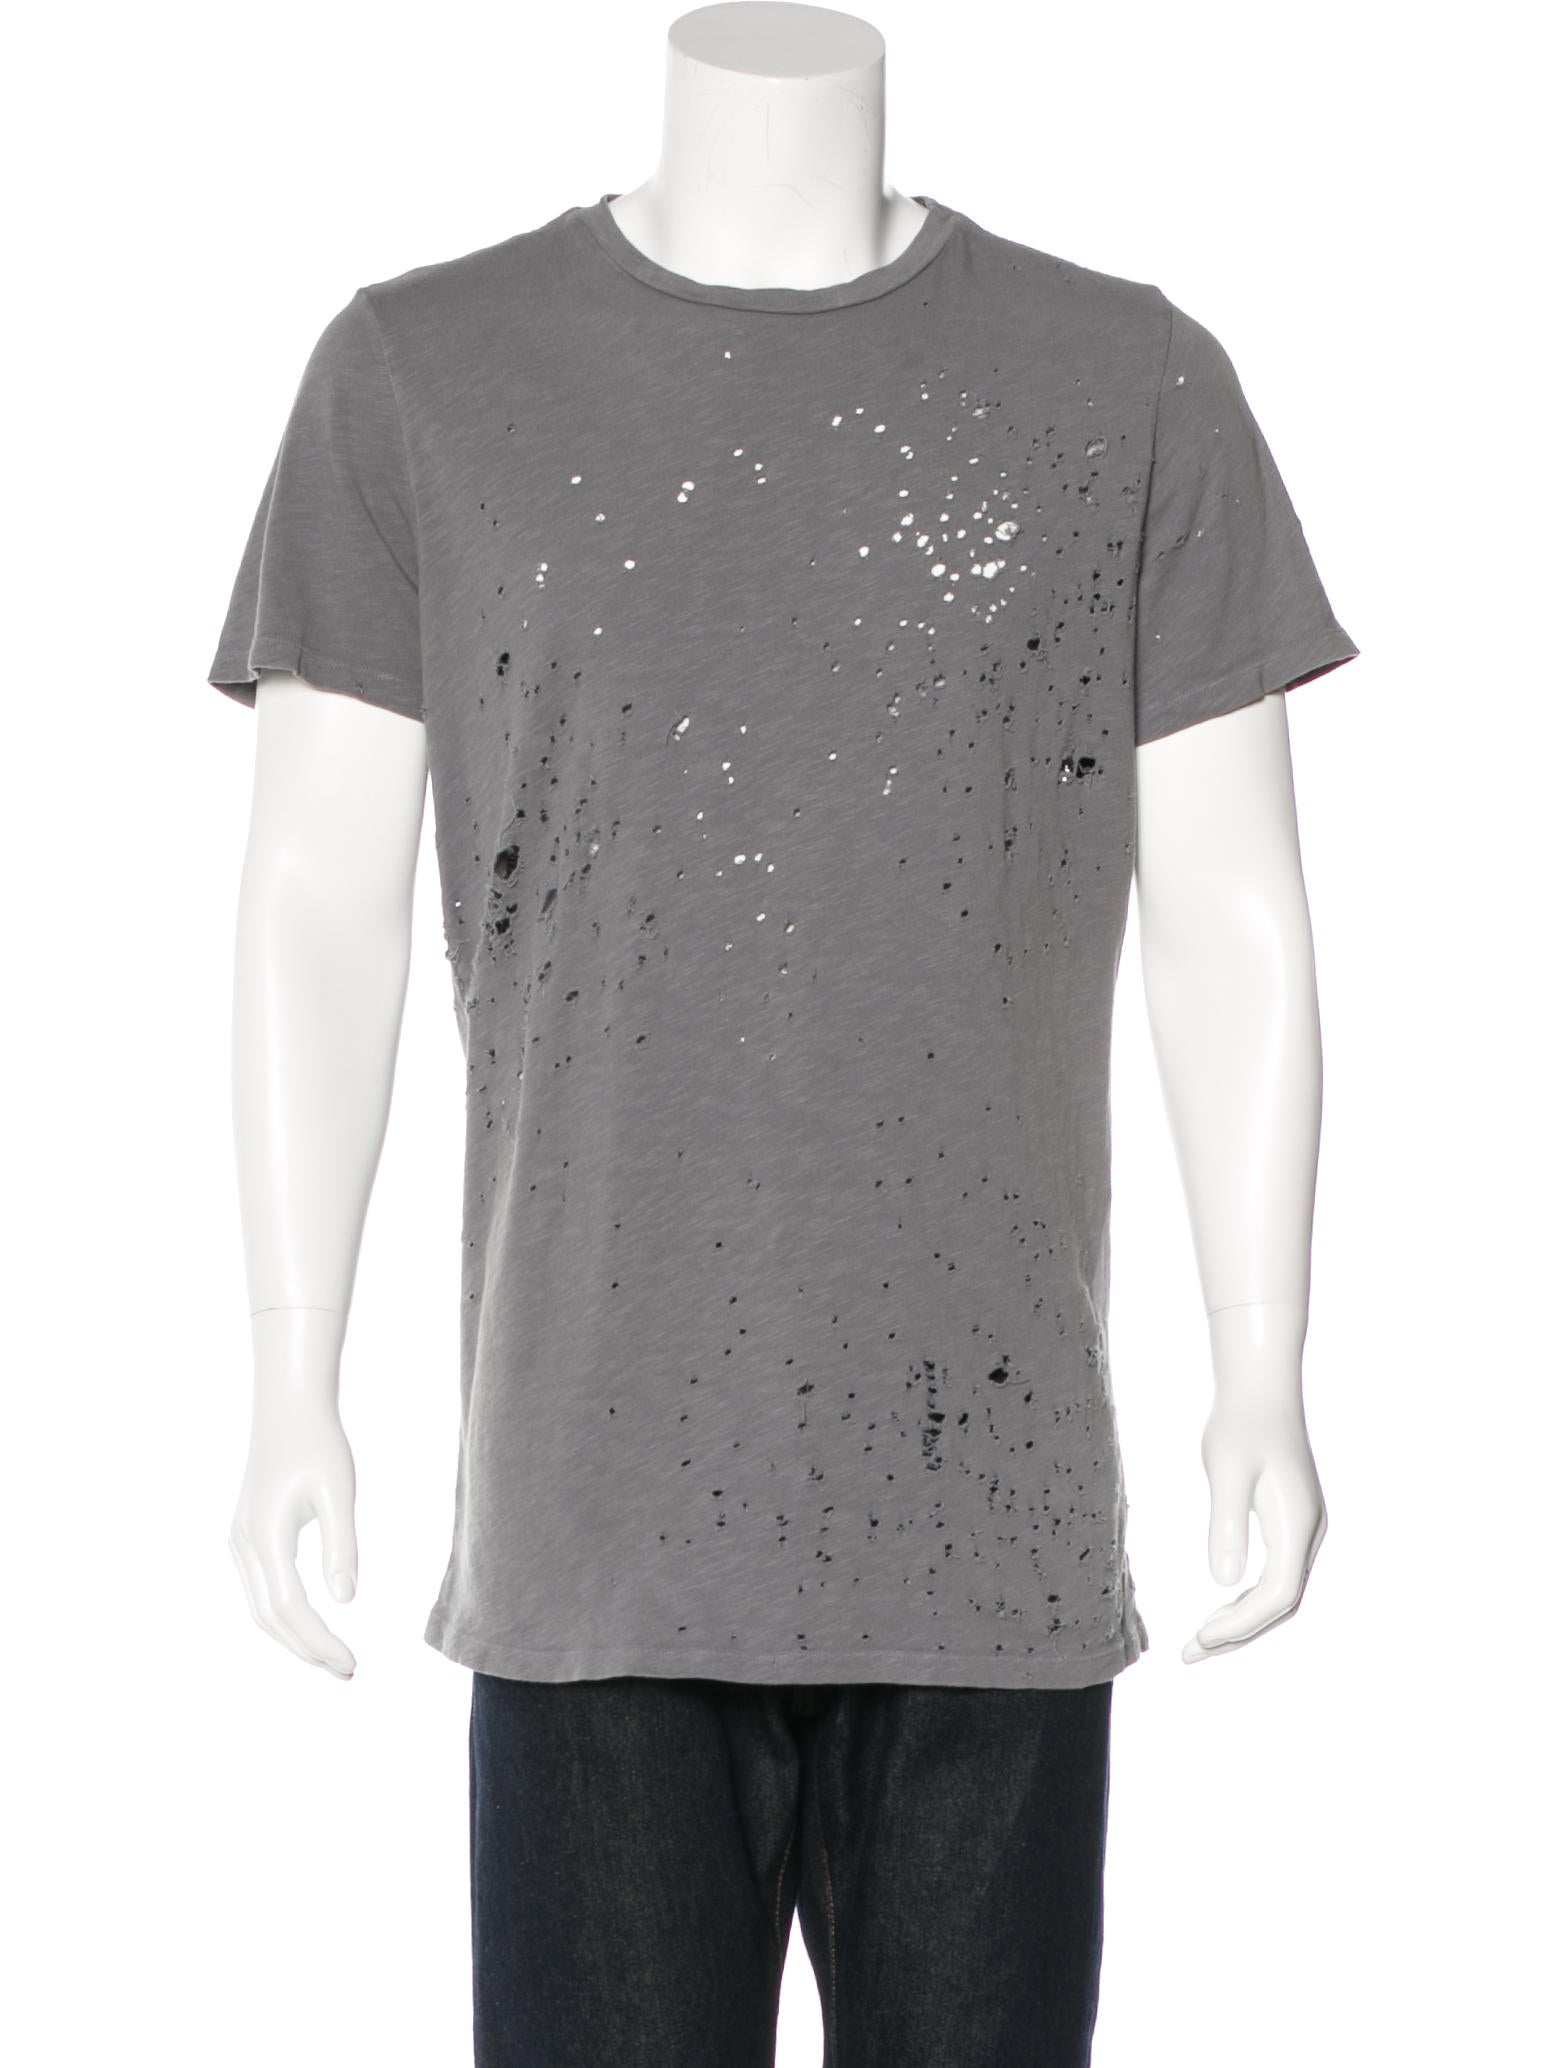 Amiri shotgun distressed t shirt clothing amiri20020 for How to make a distressed shirt